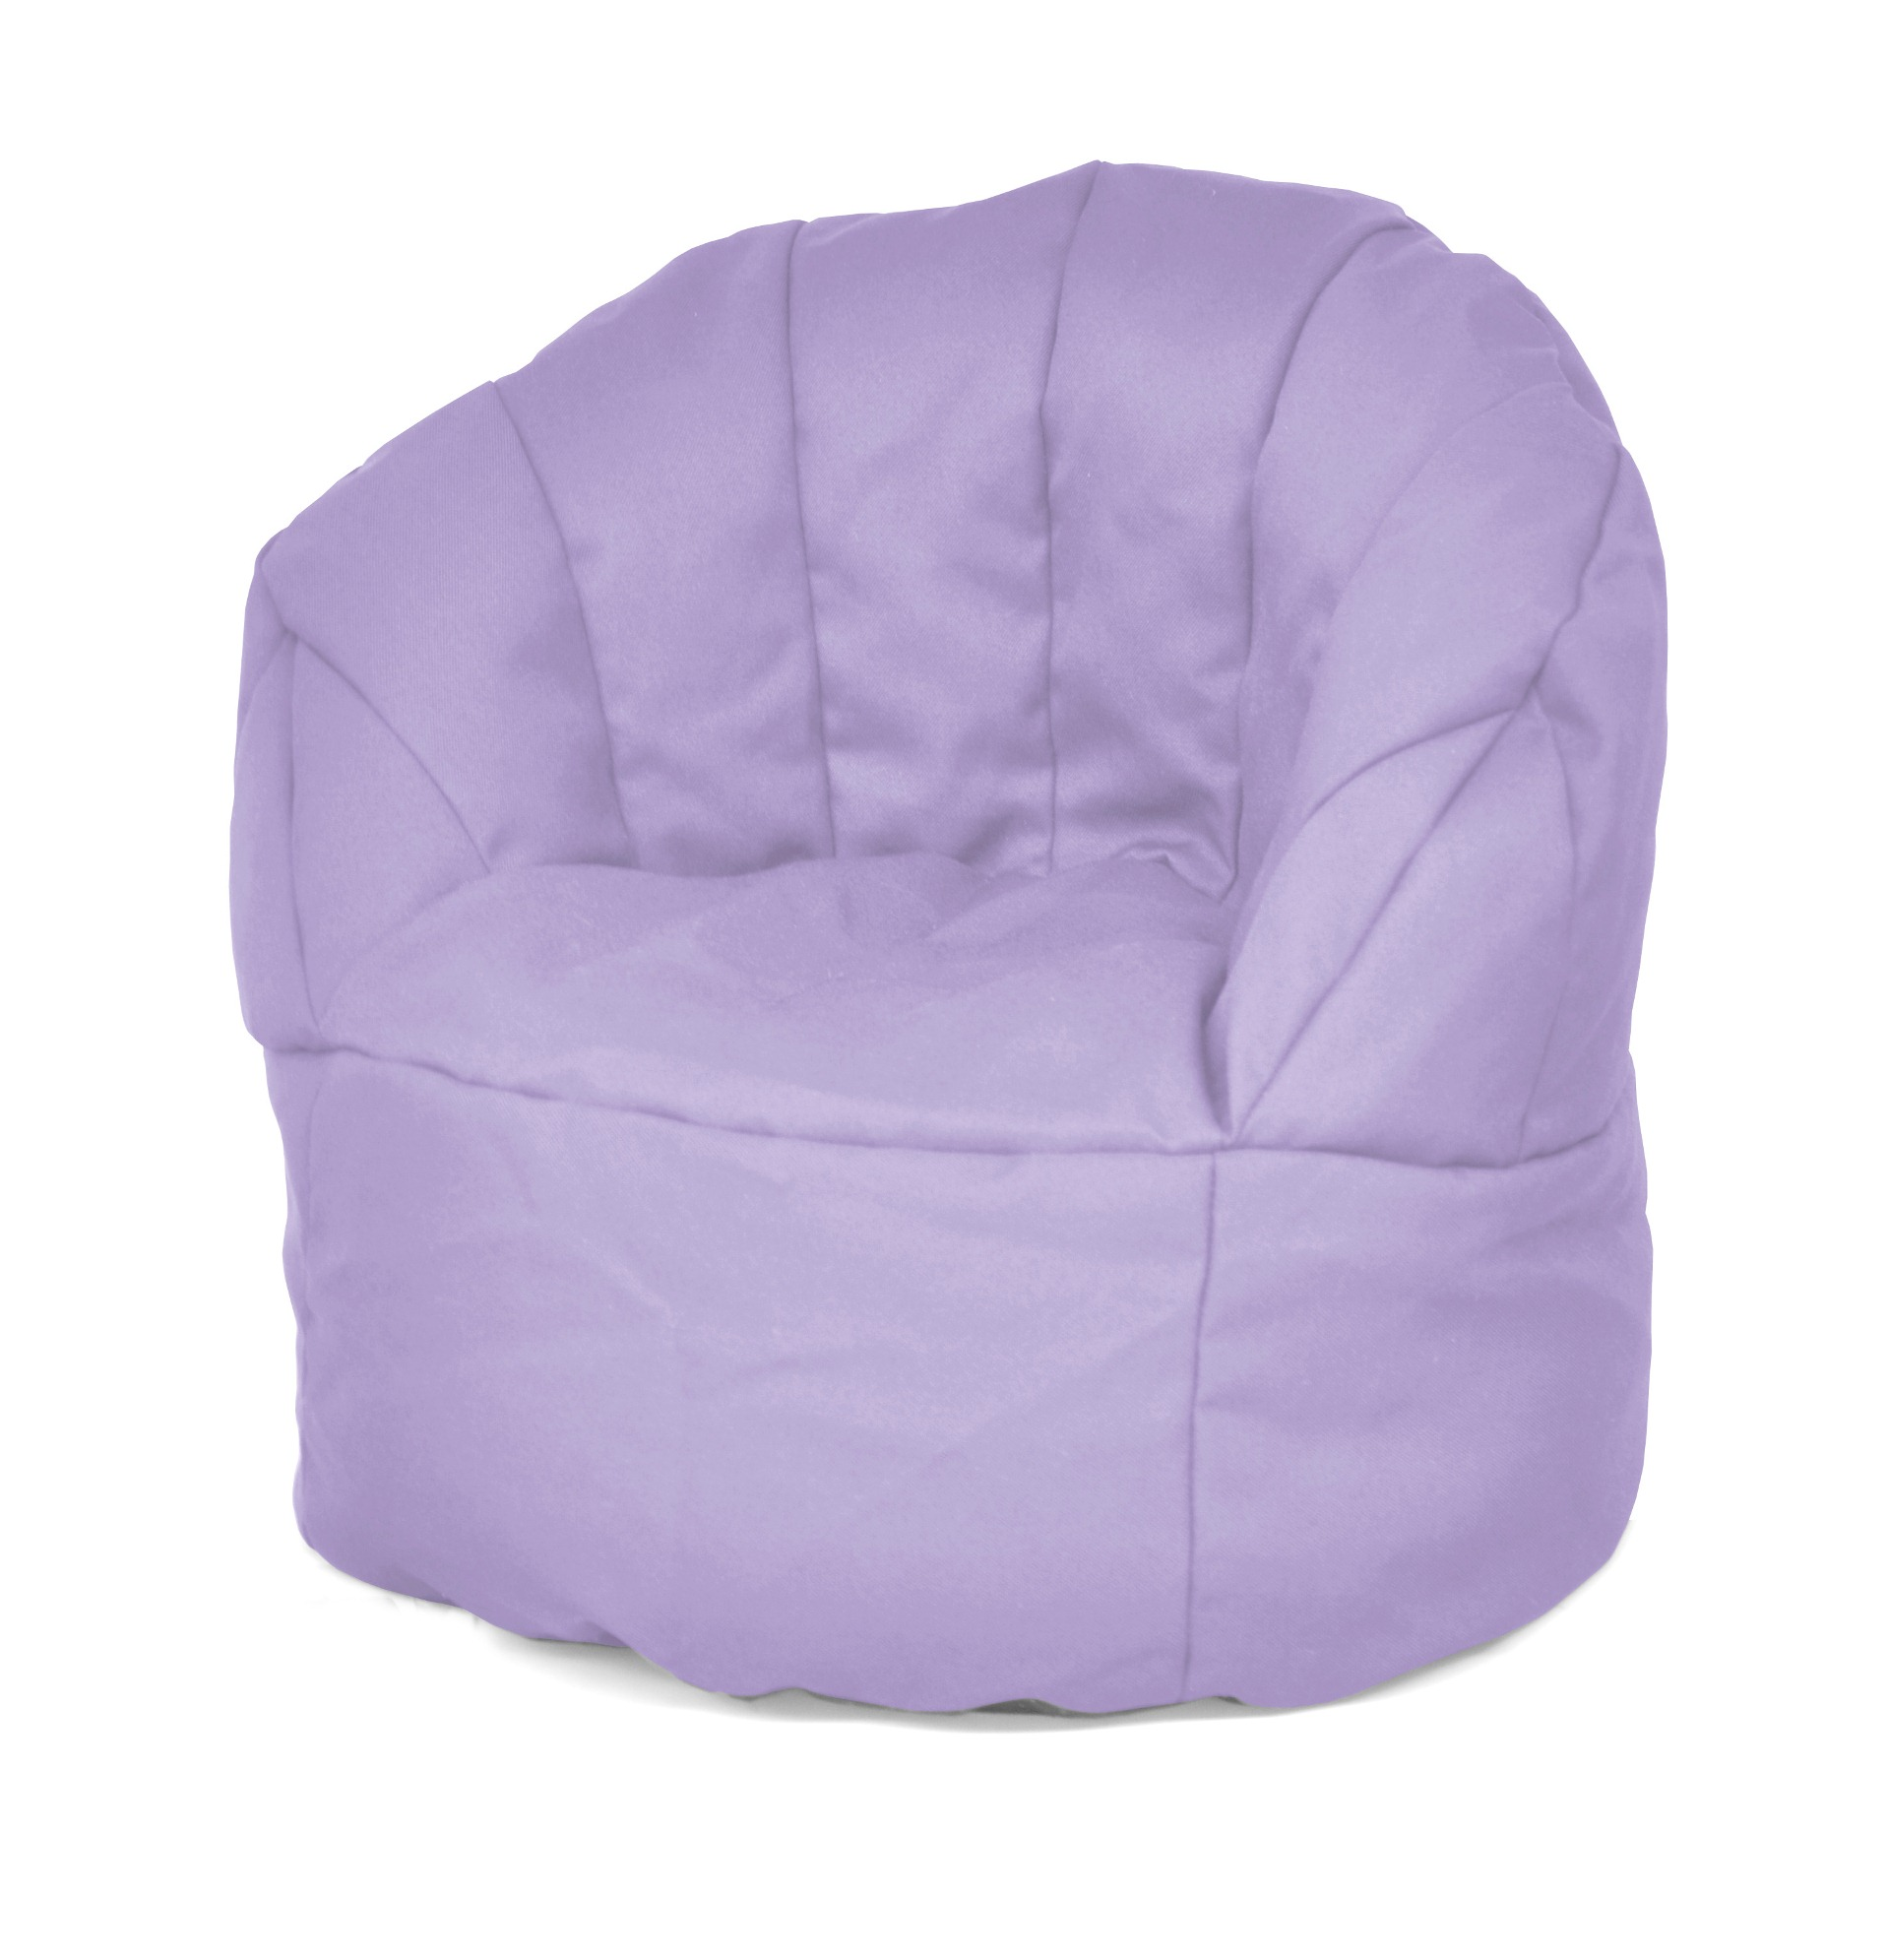 big joe bean bag chair multiple colors 33 x 32 25 tables and chairs rental inspirational rtty1